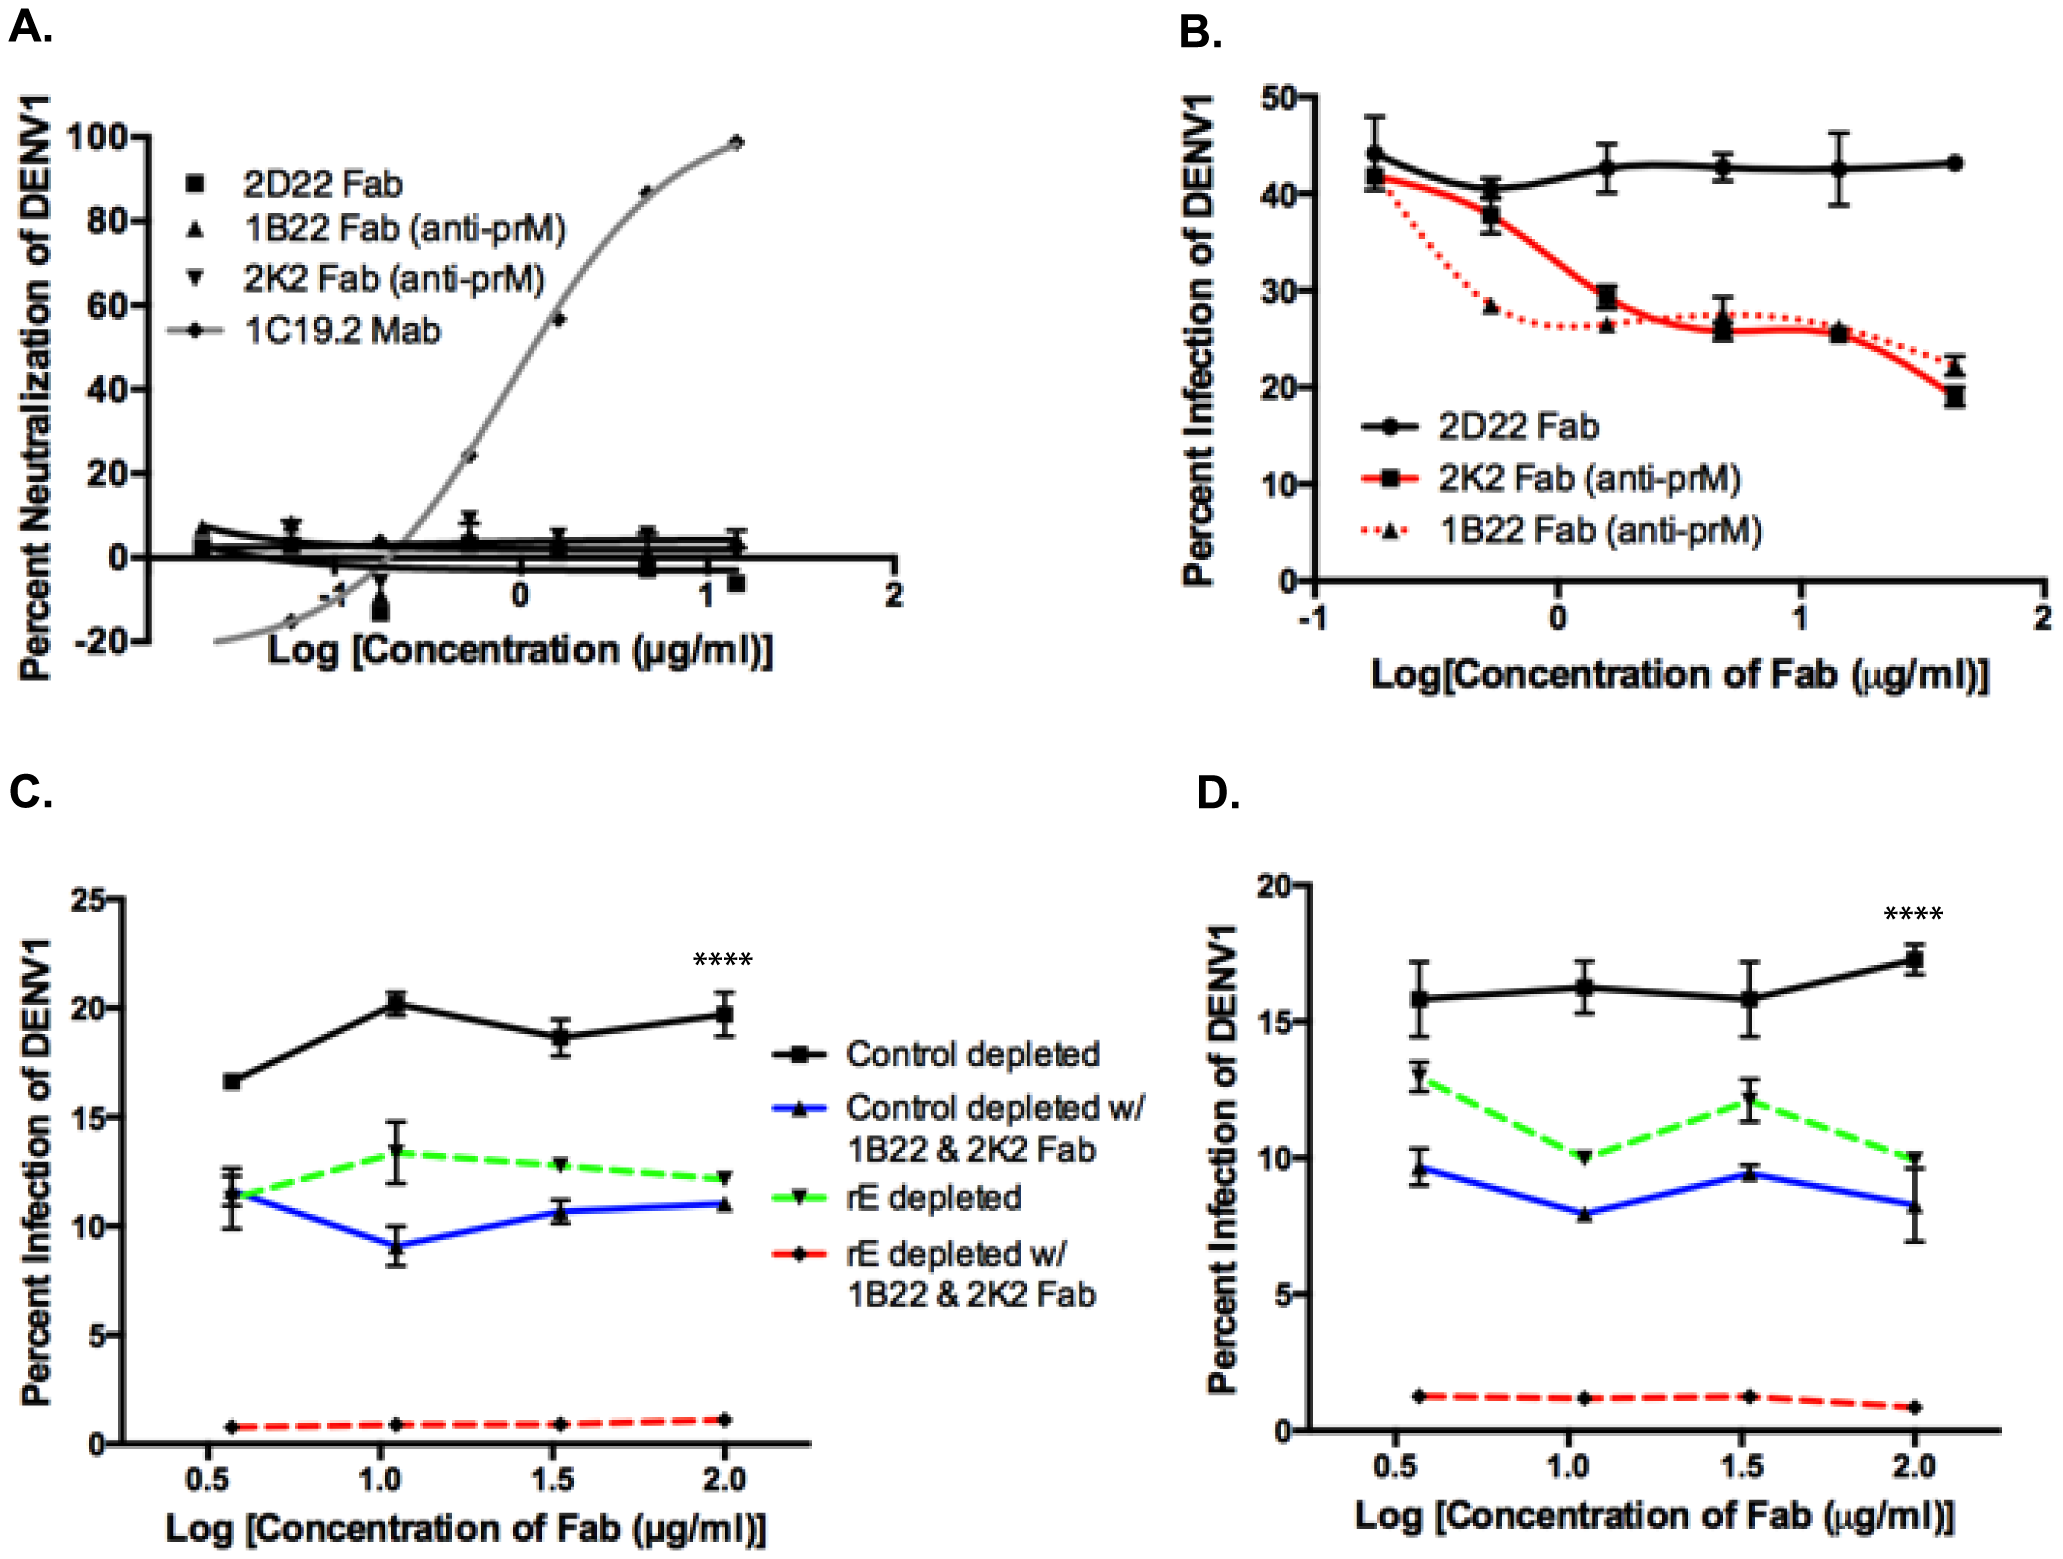 prM-specific and rE-specific cross-reactive antibodies together make up the entire population of enhancing antibodies in DENV-immune human sera.